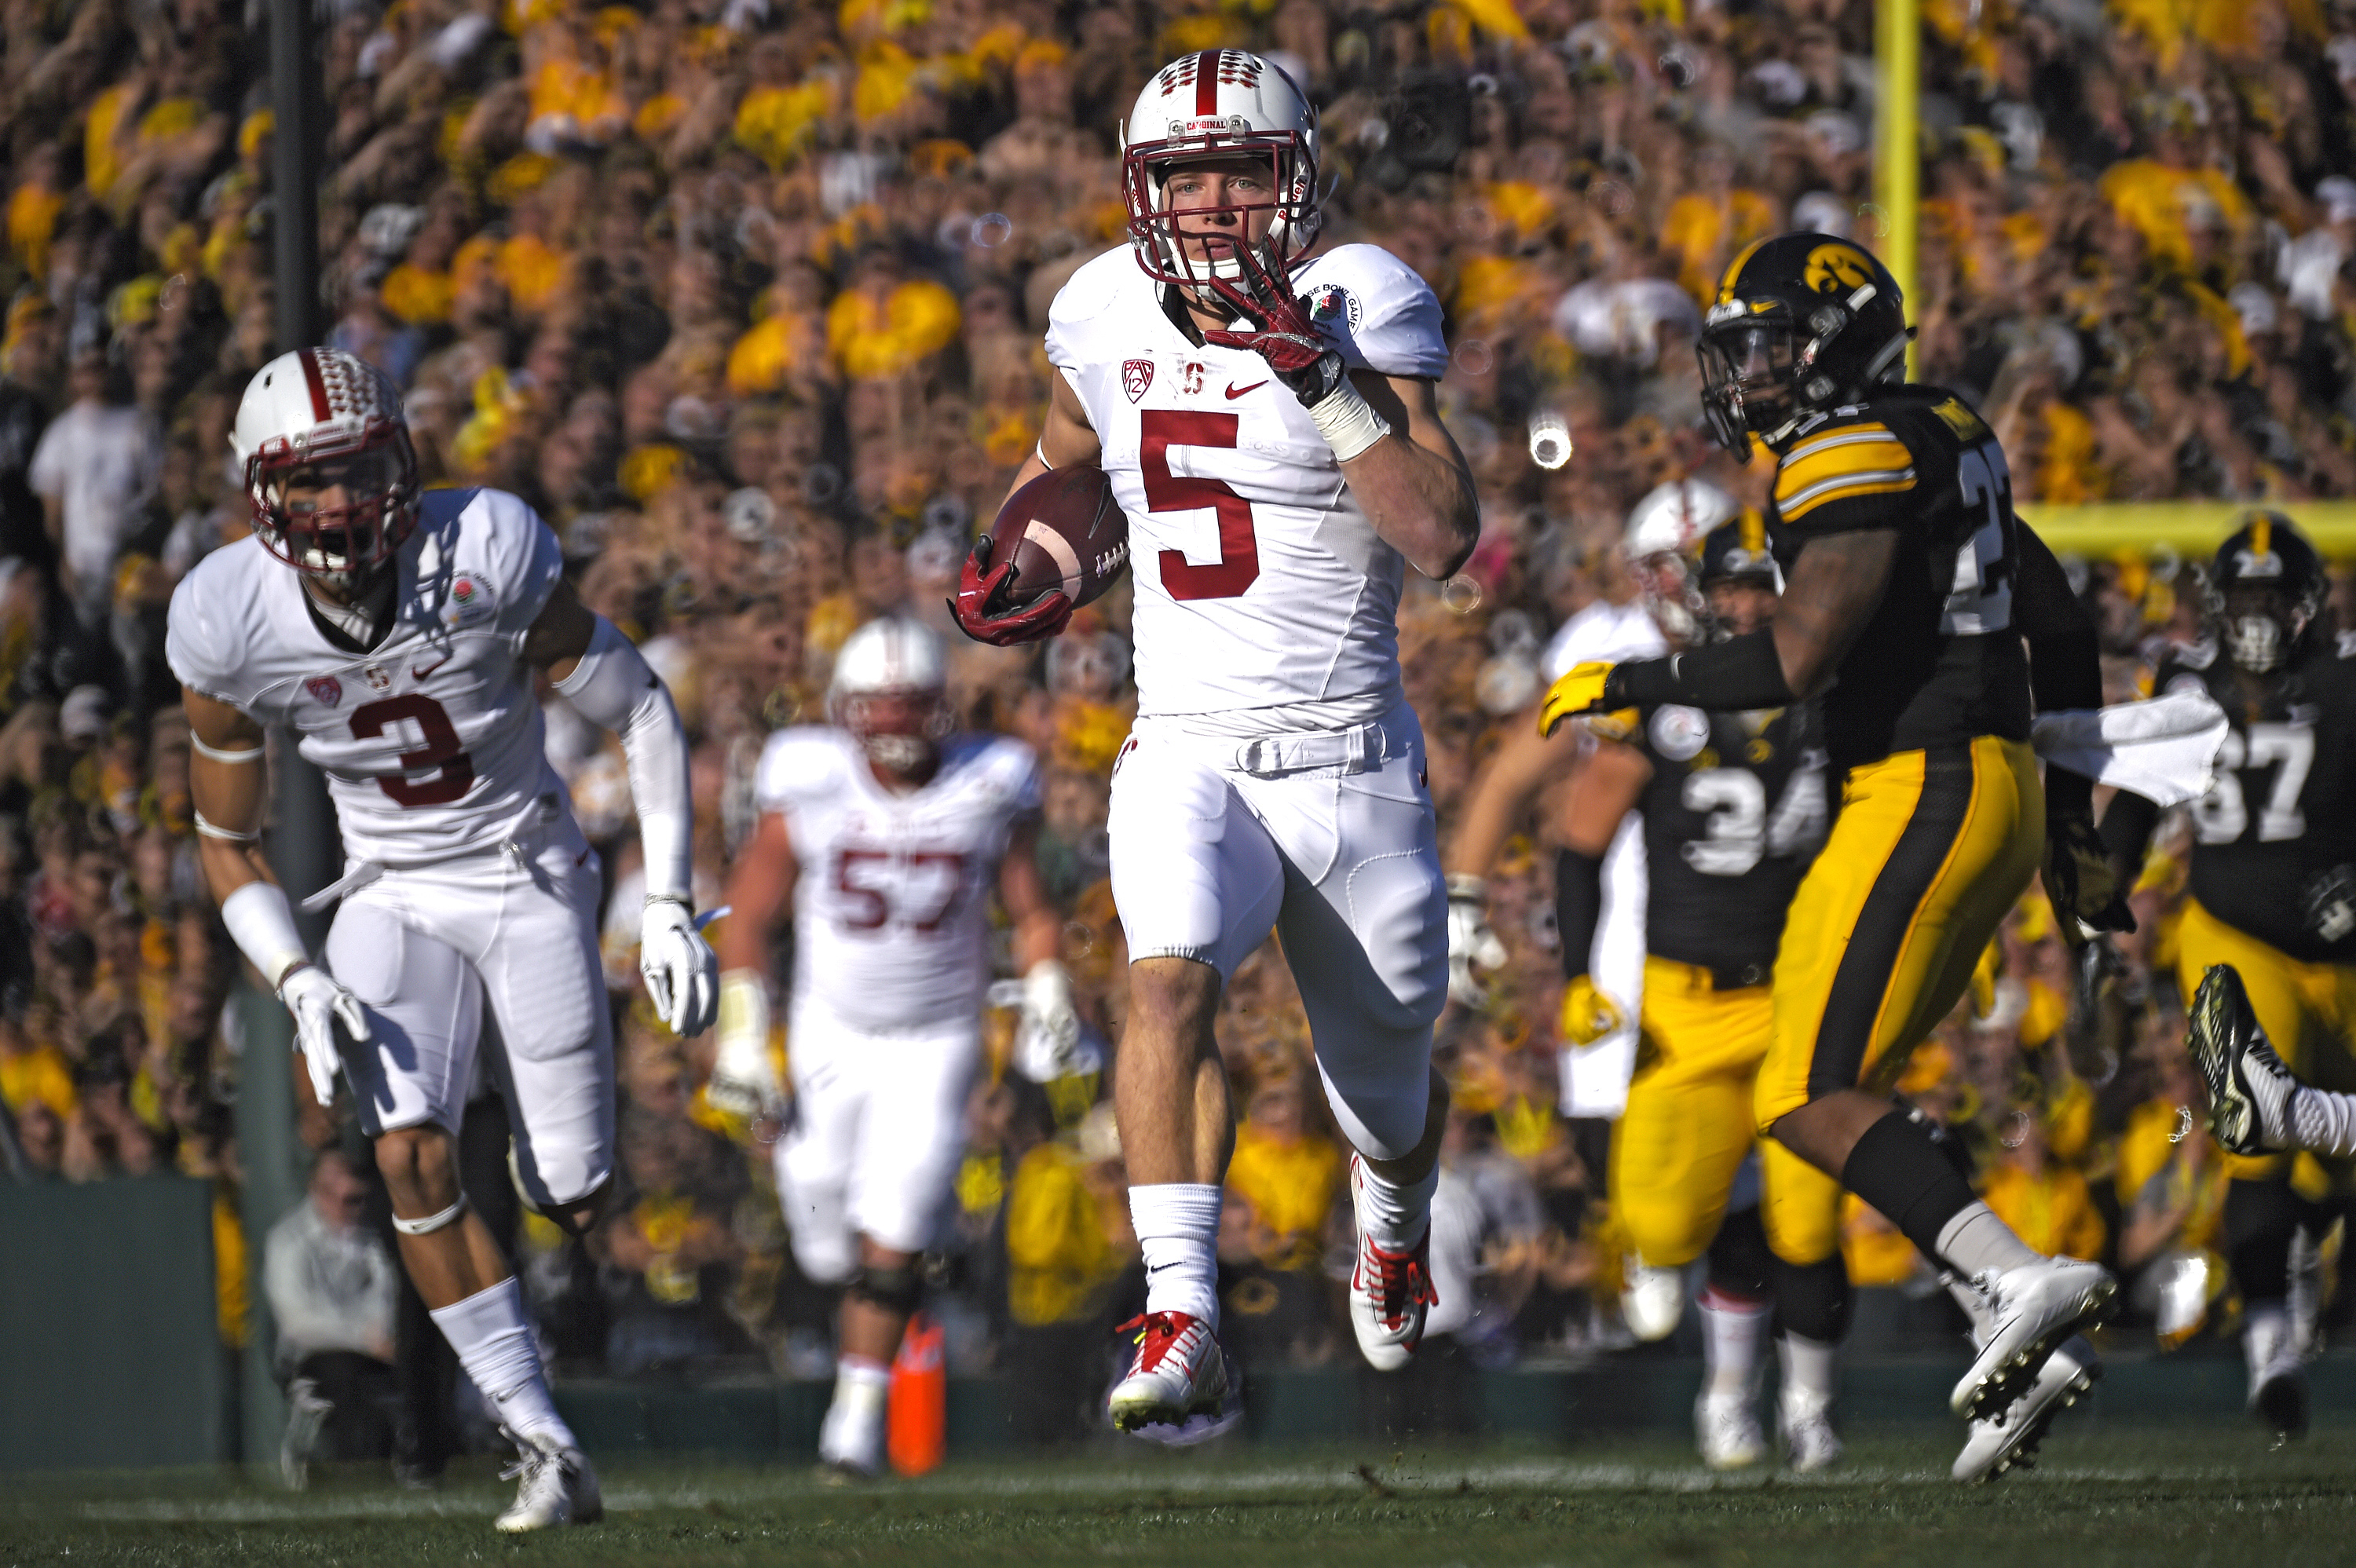 Stanford running back Christian McCaffrey scores against Iowa during the first half of the Rose Bowl NCAA college football game, Friday, Jan. 1, 2016, in Pasadena, Calif. (AP Photo/Mark J. Terrill)